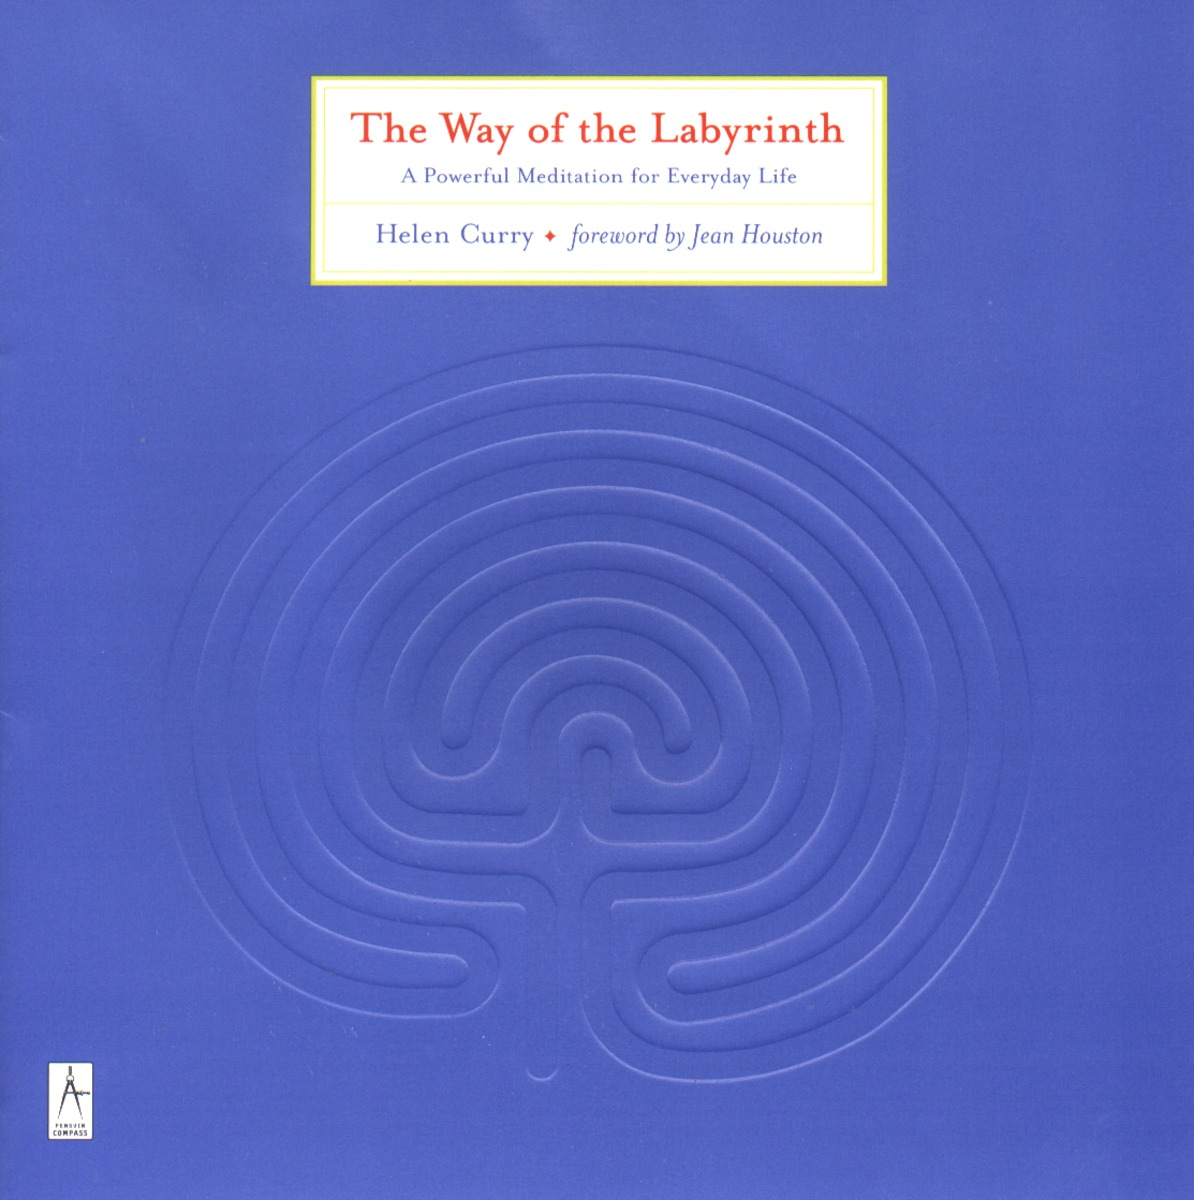 The Way of the Labyrinth